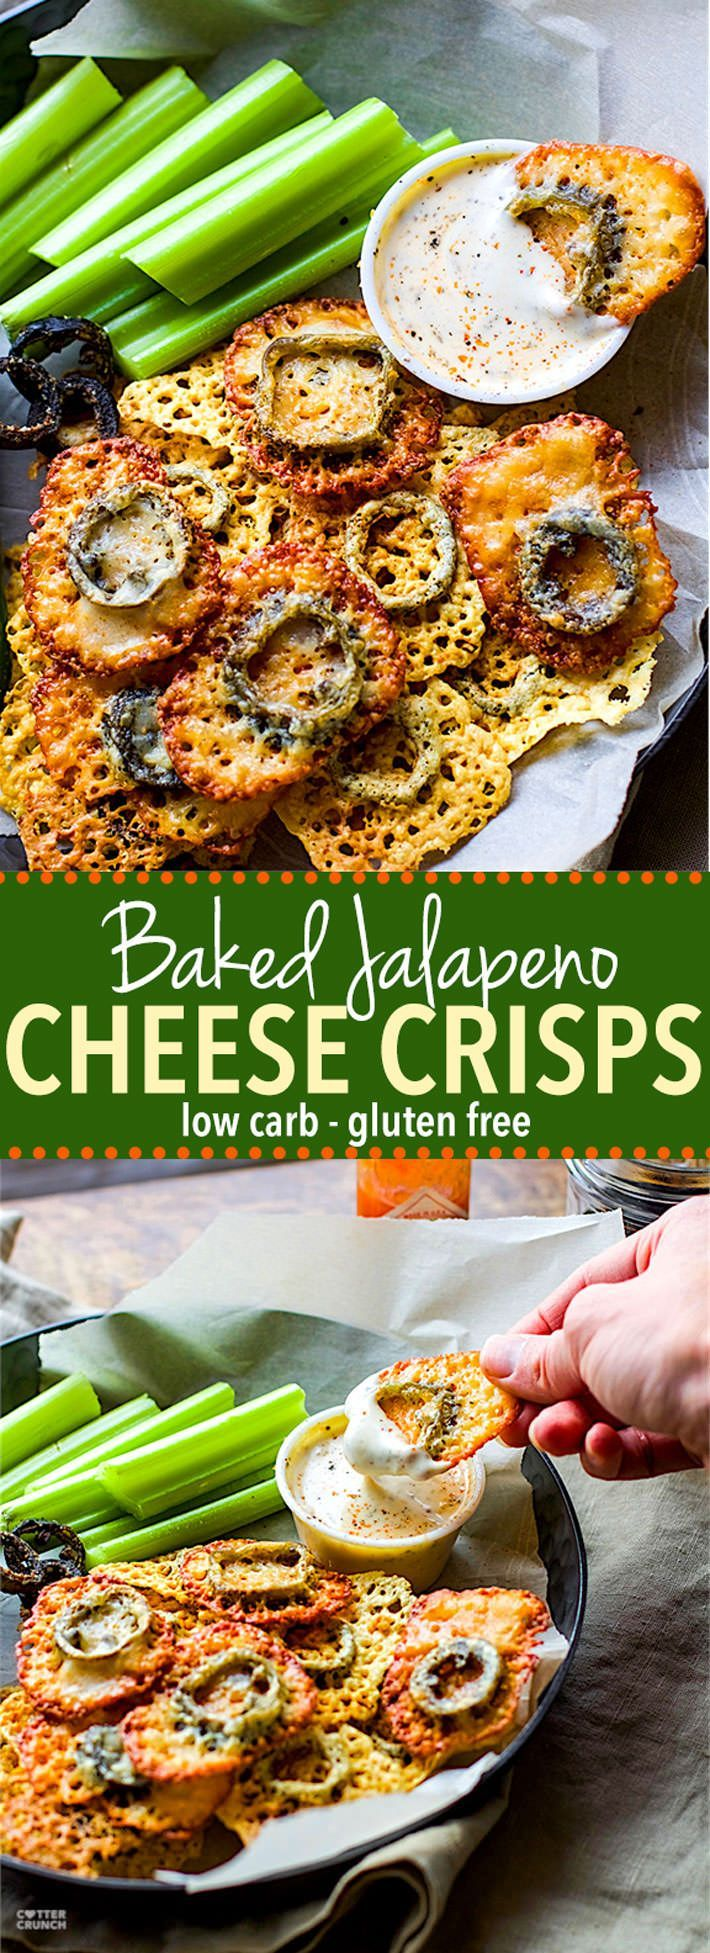 Easy Baked Jalapeno Cheese Crisps {Gluten Free, Low Carb} | Cotter Crunch